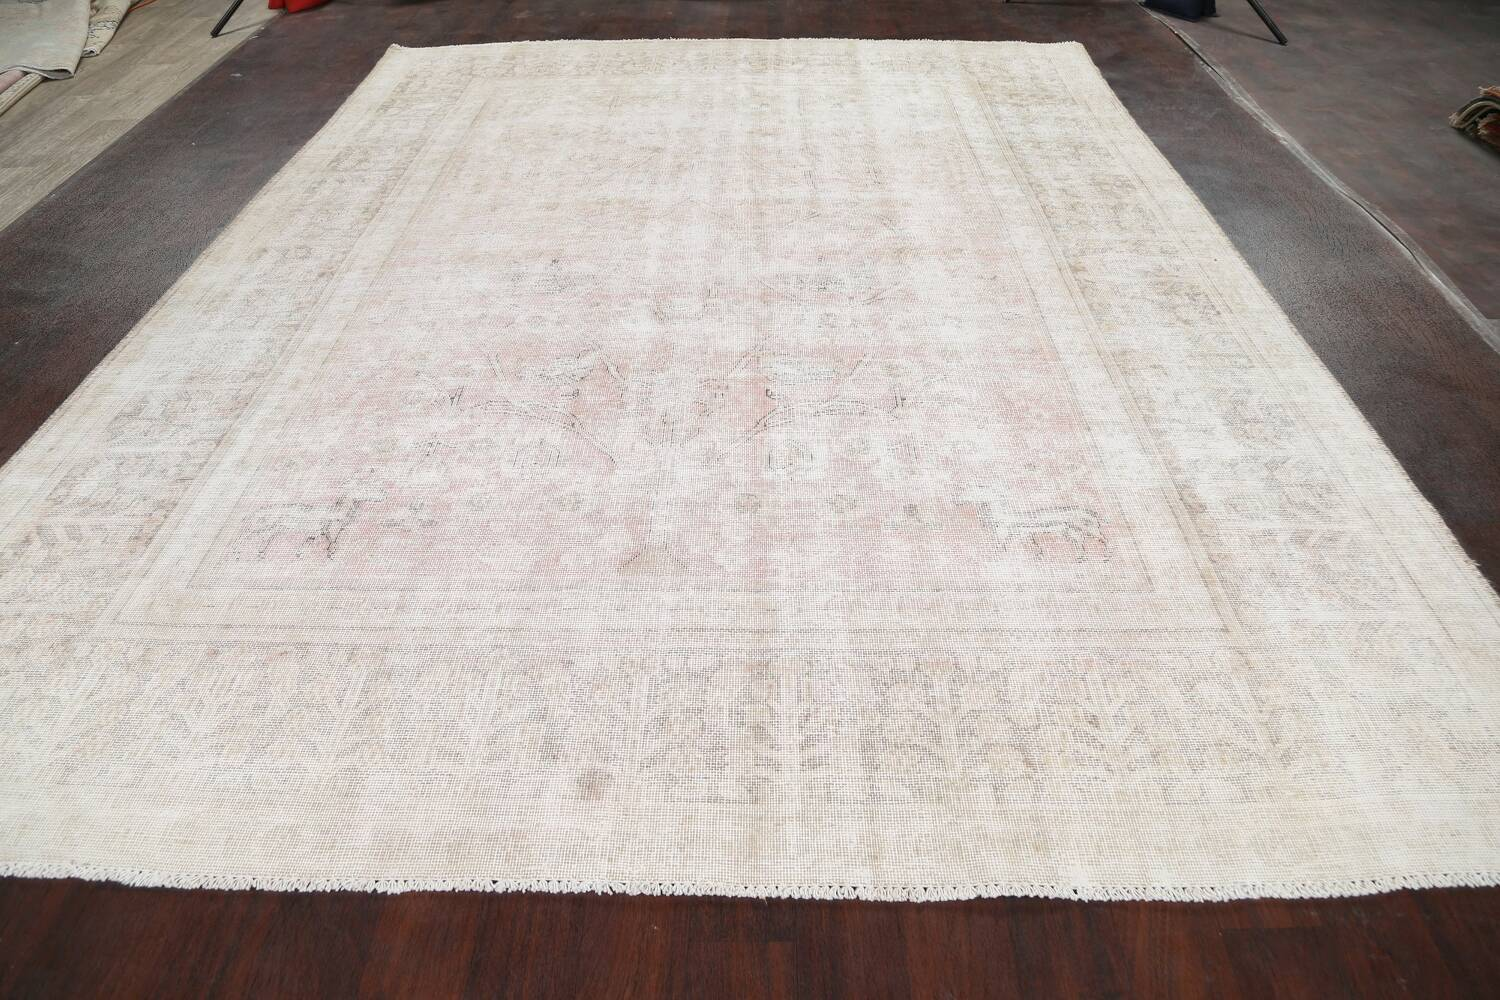 Antique Muted Distressed Tabriz Persian Area Rug 9x11 image 15